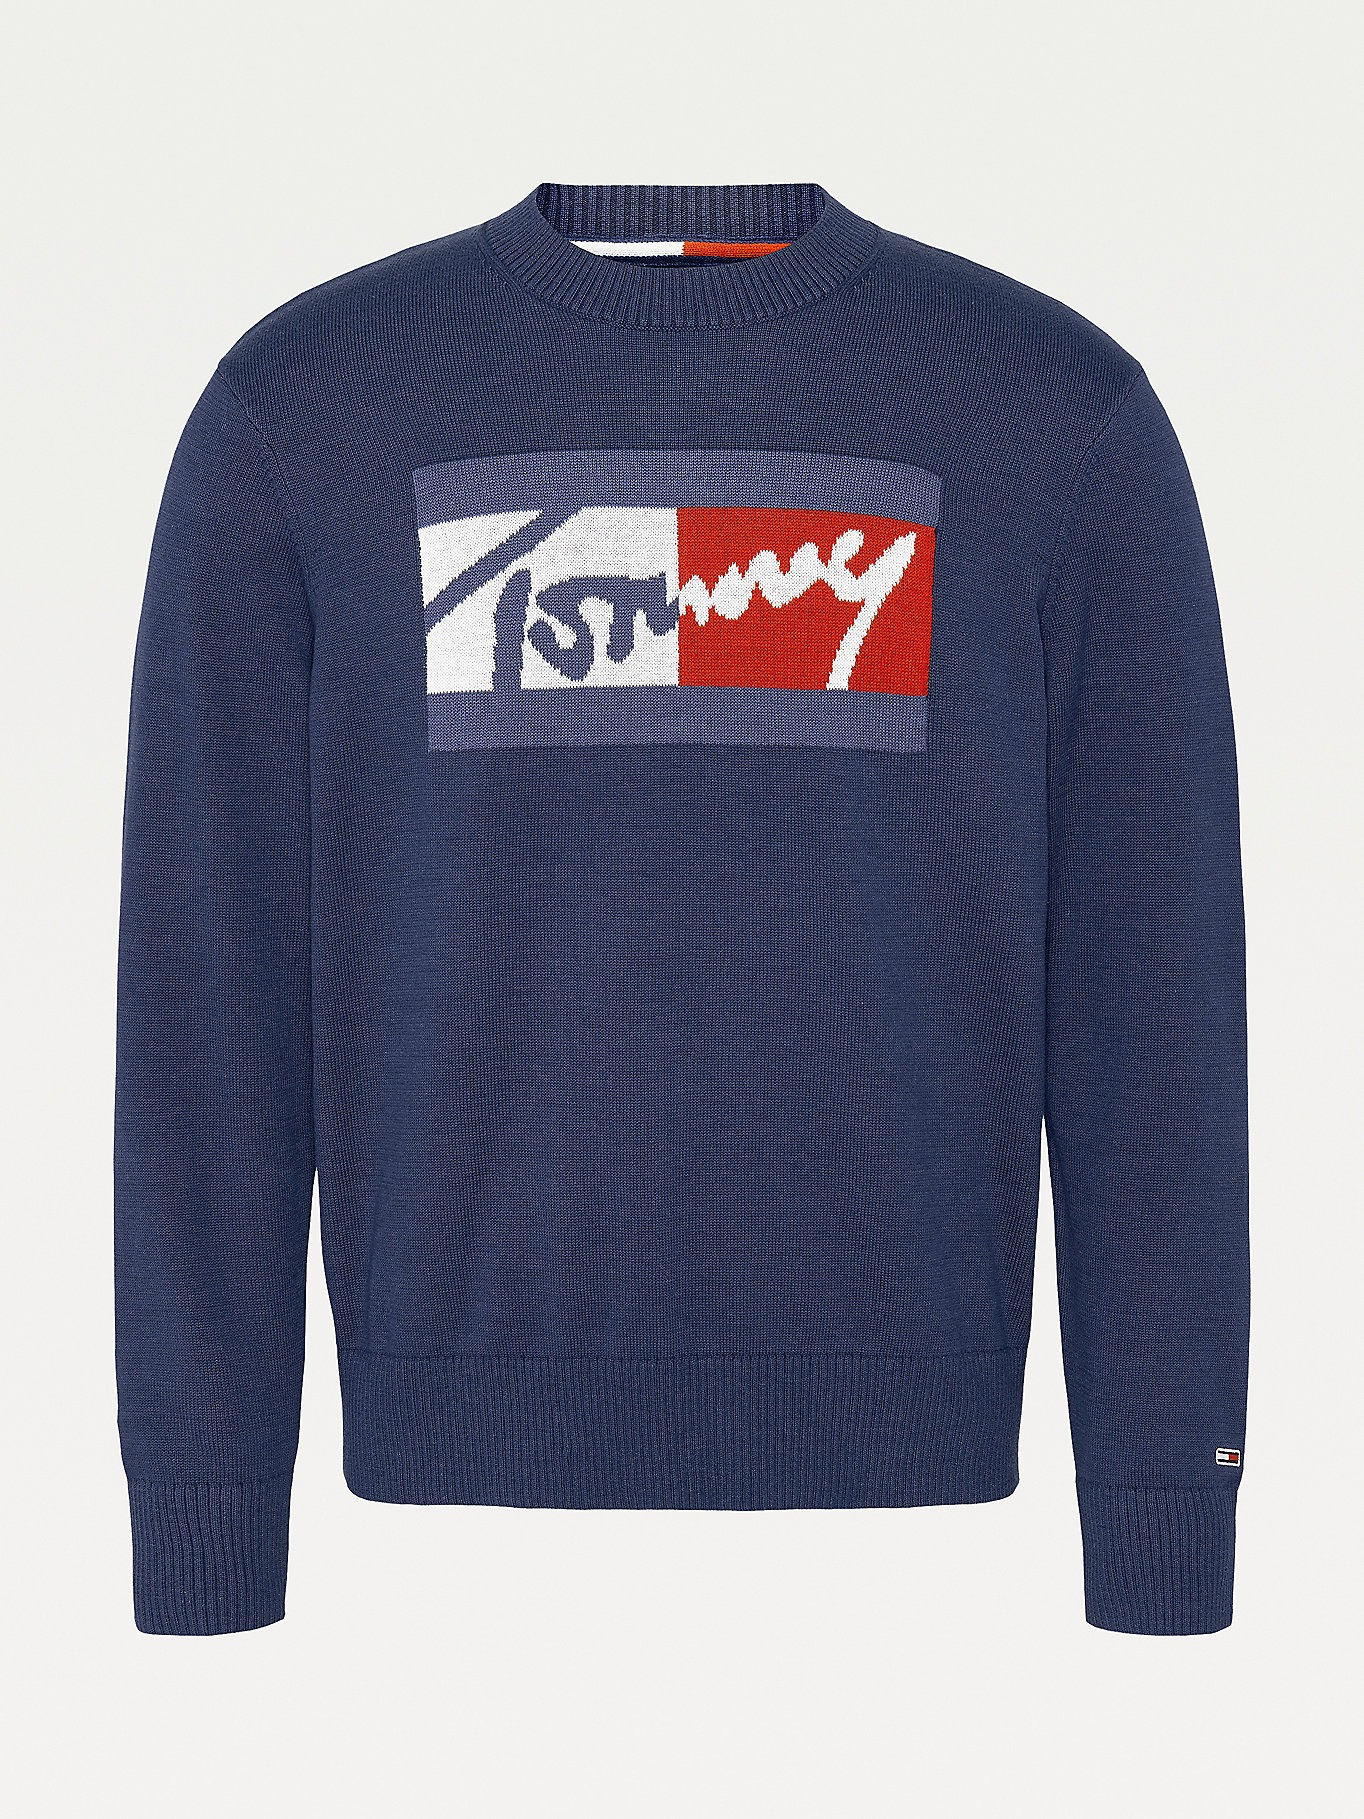 PULLOVER RELAXED FIT TOMMY JEANS | Maglie | DM0DM11365C87 TWILIGHT NAVY